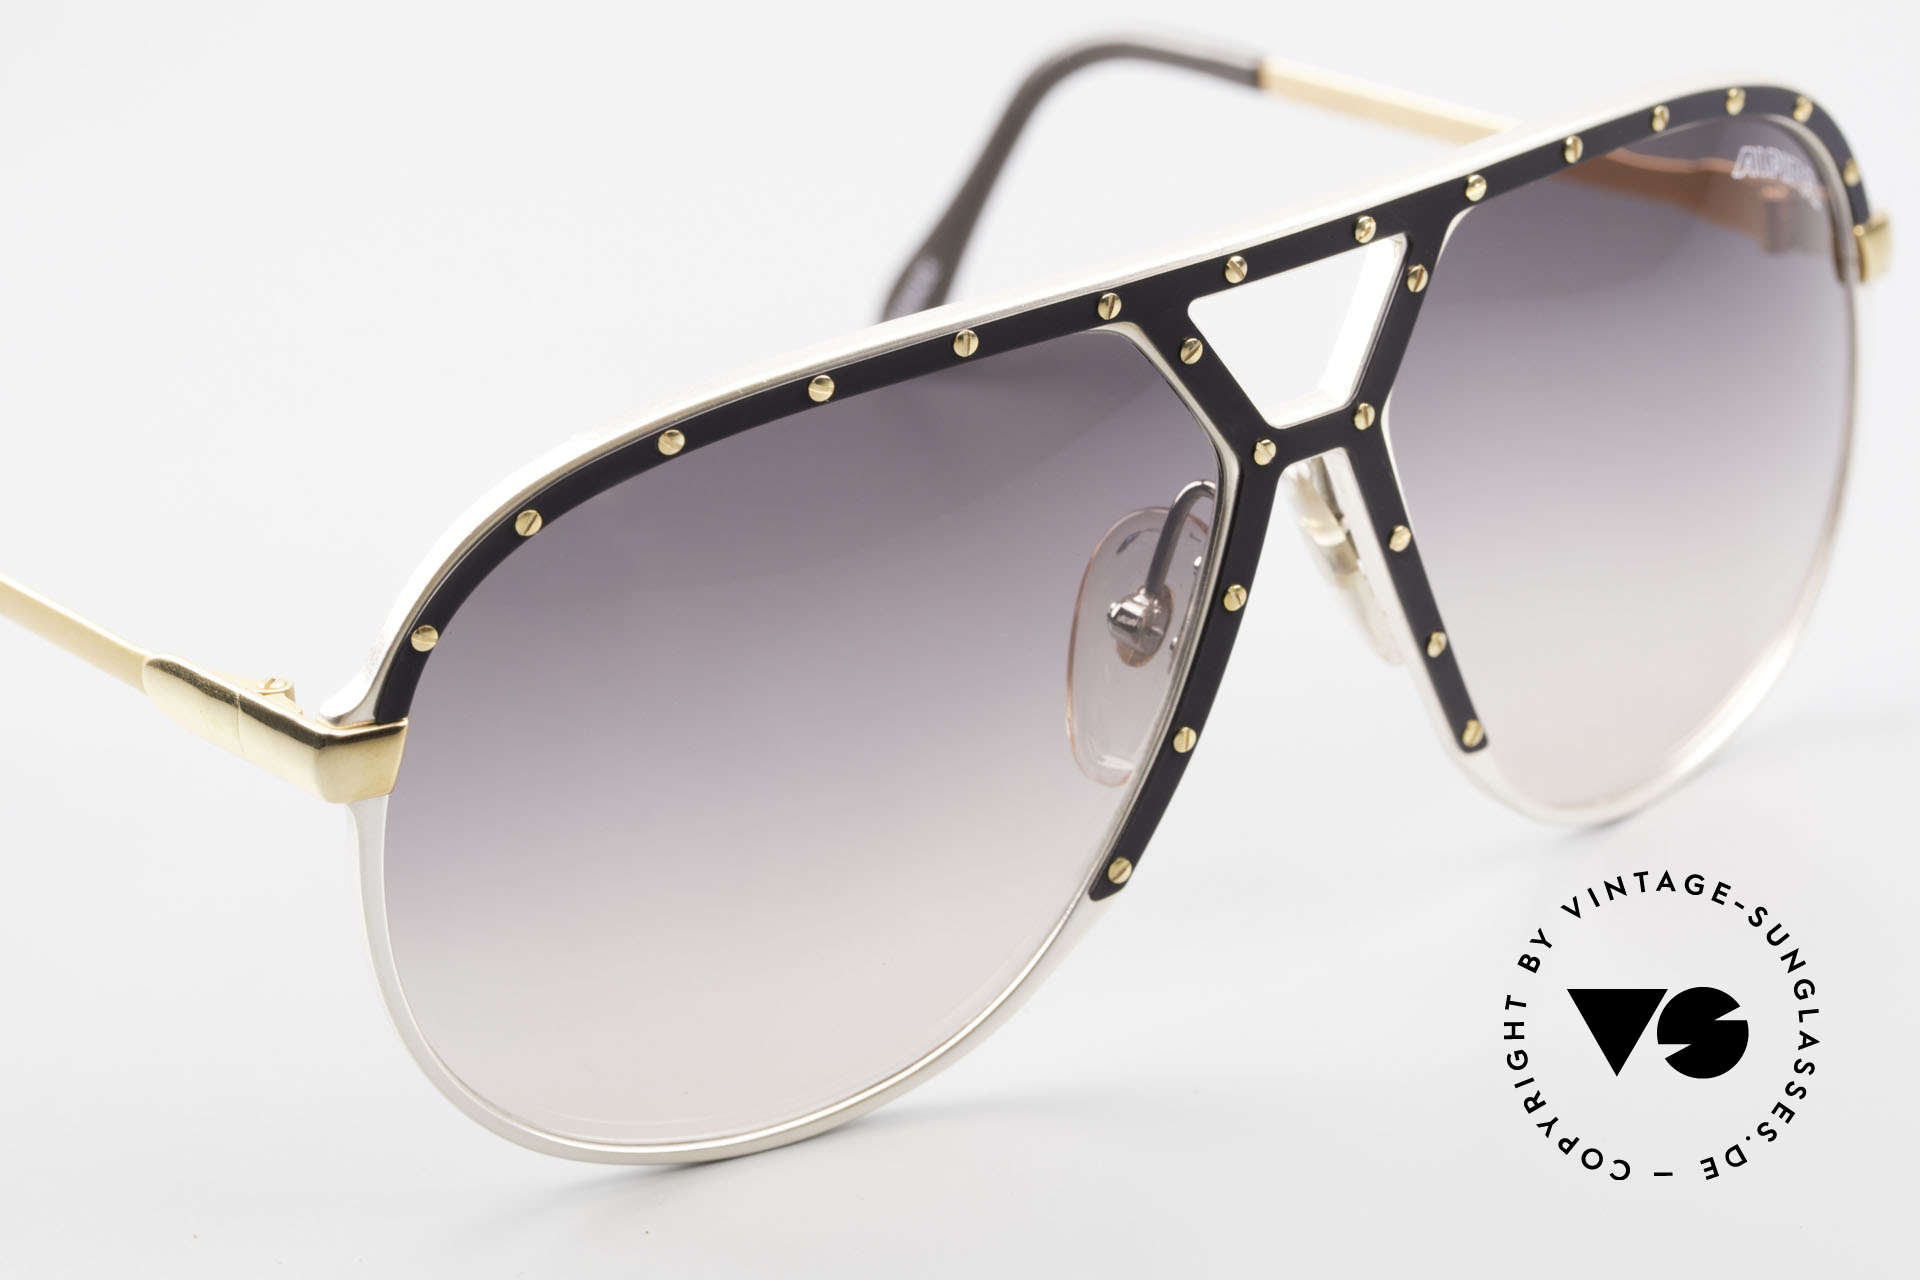 Alpina M1 Stevie Wonder 80's Sunglasses, handmade (West Germany) and in LARGE size 64-14, Made for Men